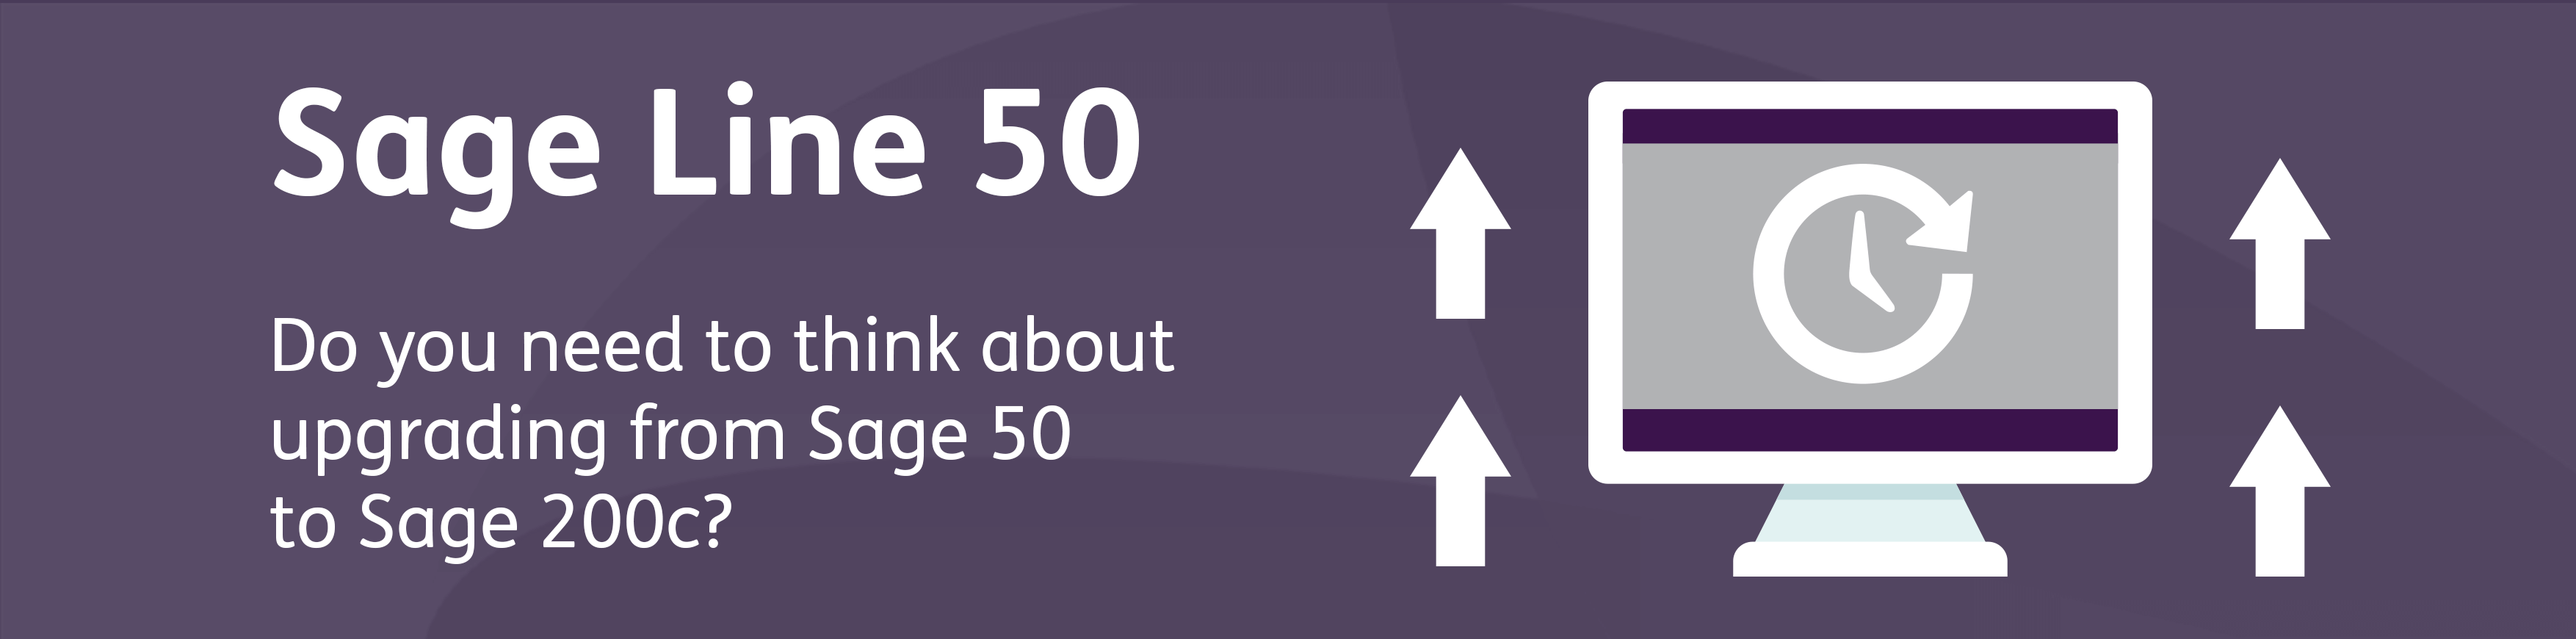 Upgrade-from-Sage-50-to-Sage-200